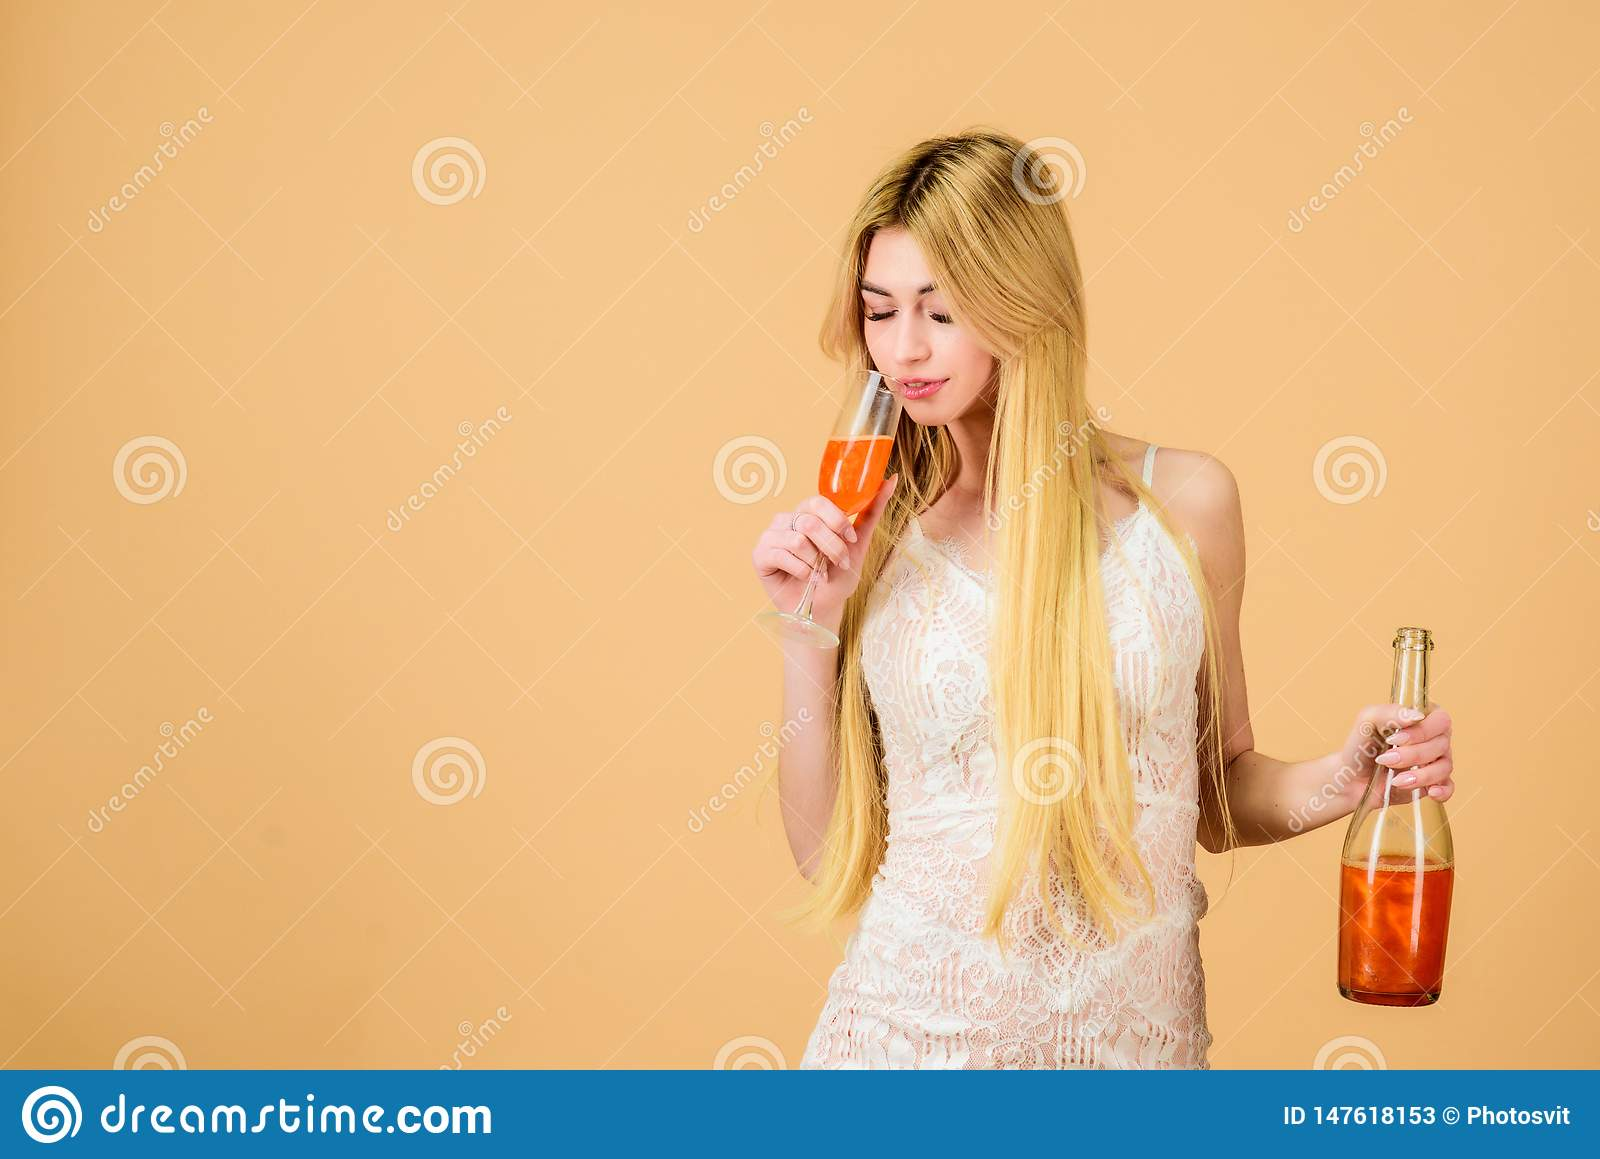 Sommelier woman at work. Drinking brandy. hangover. Party celebration. Bad habit. sexy woman drink alcohol. wedding and